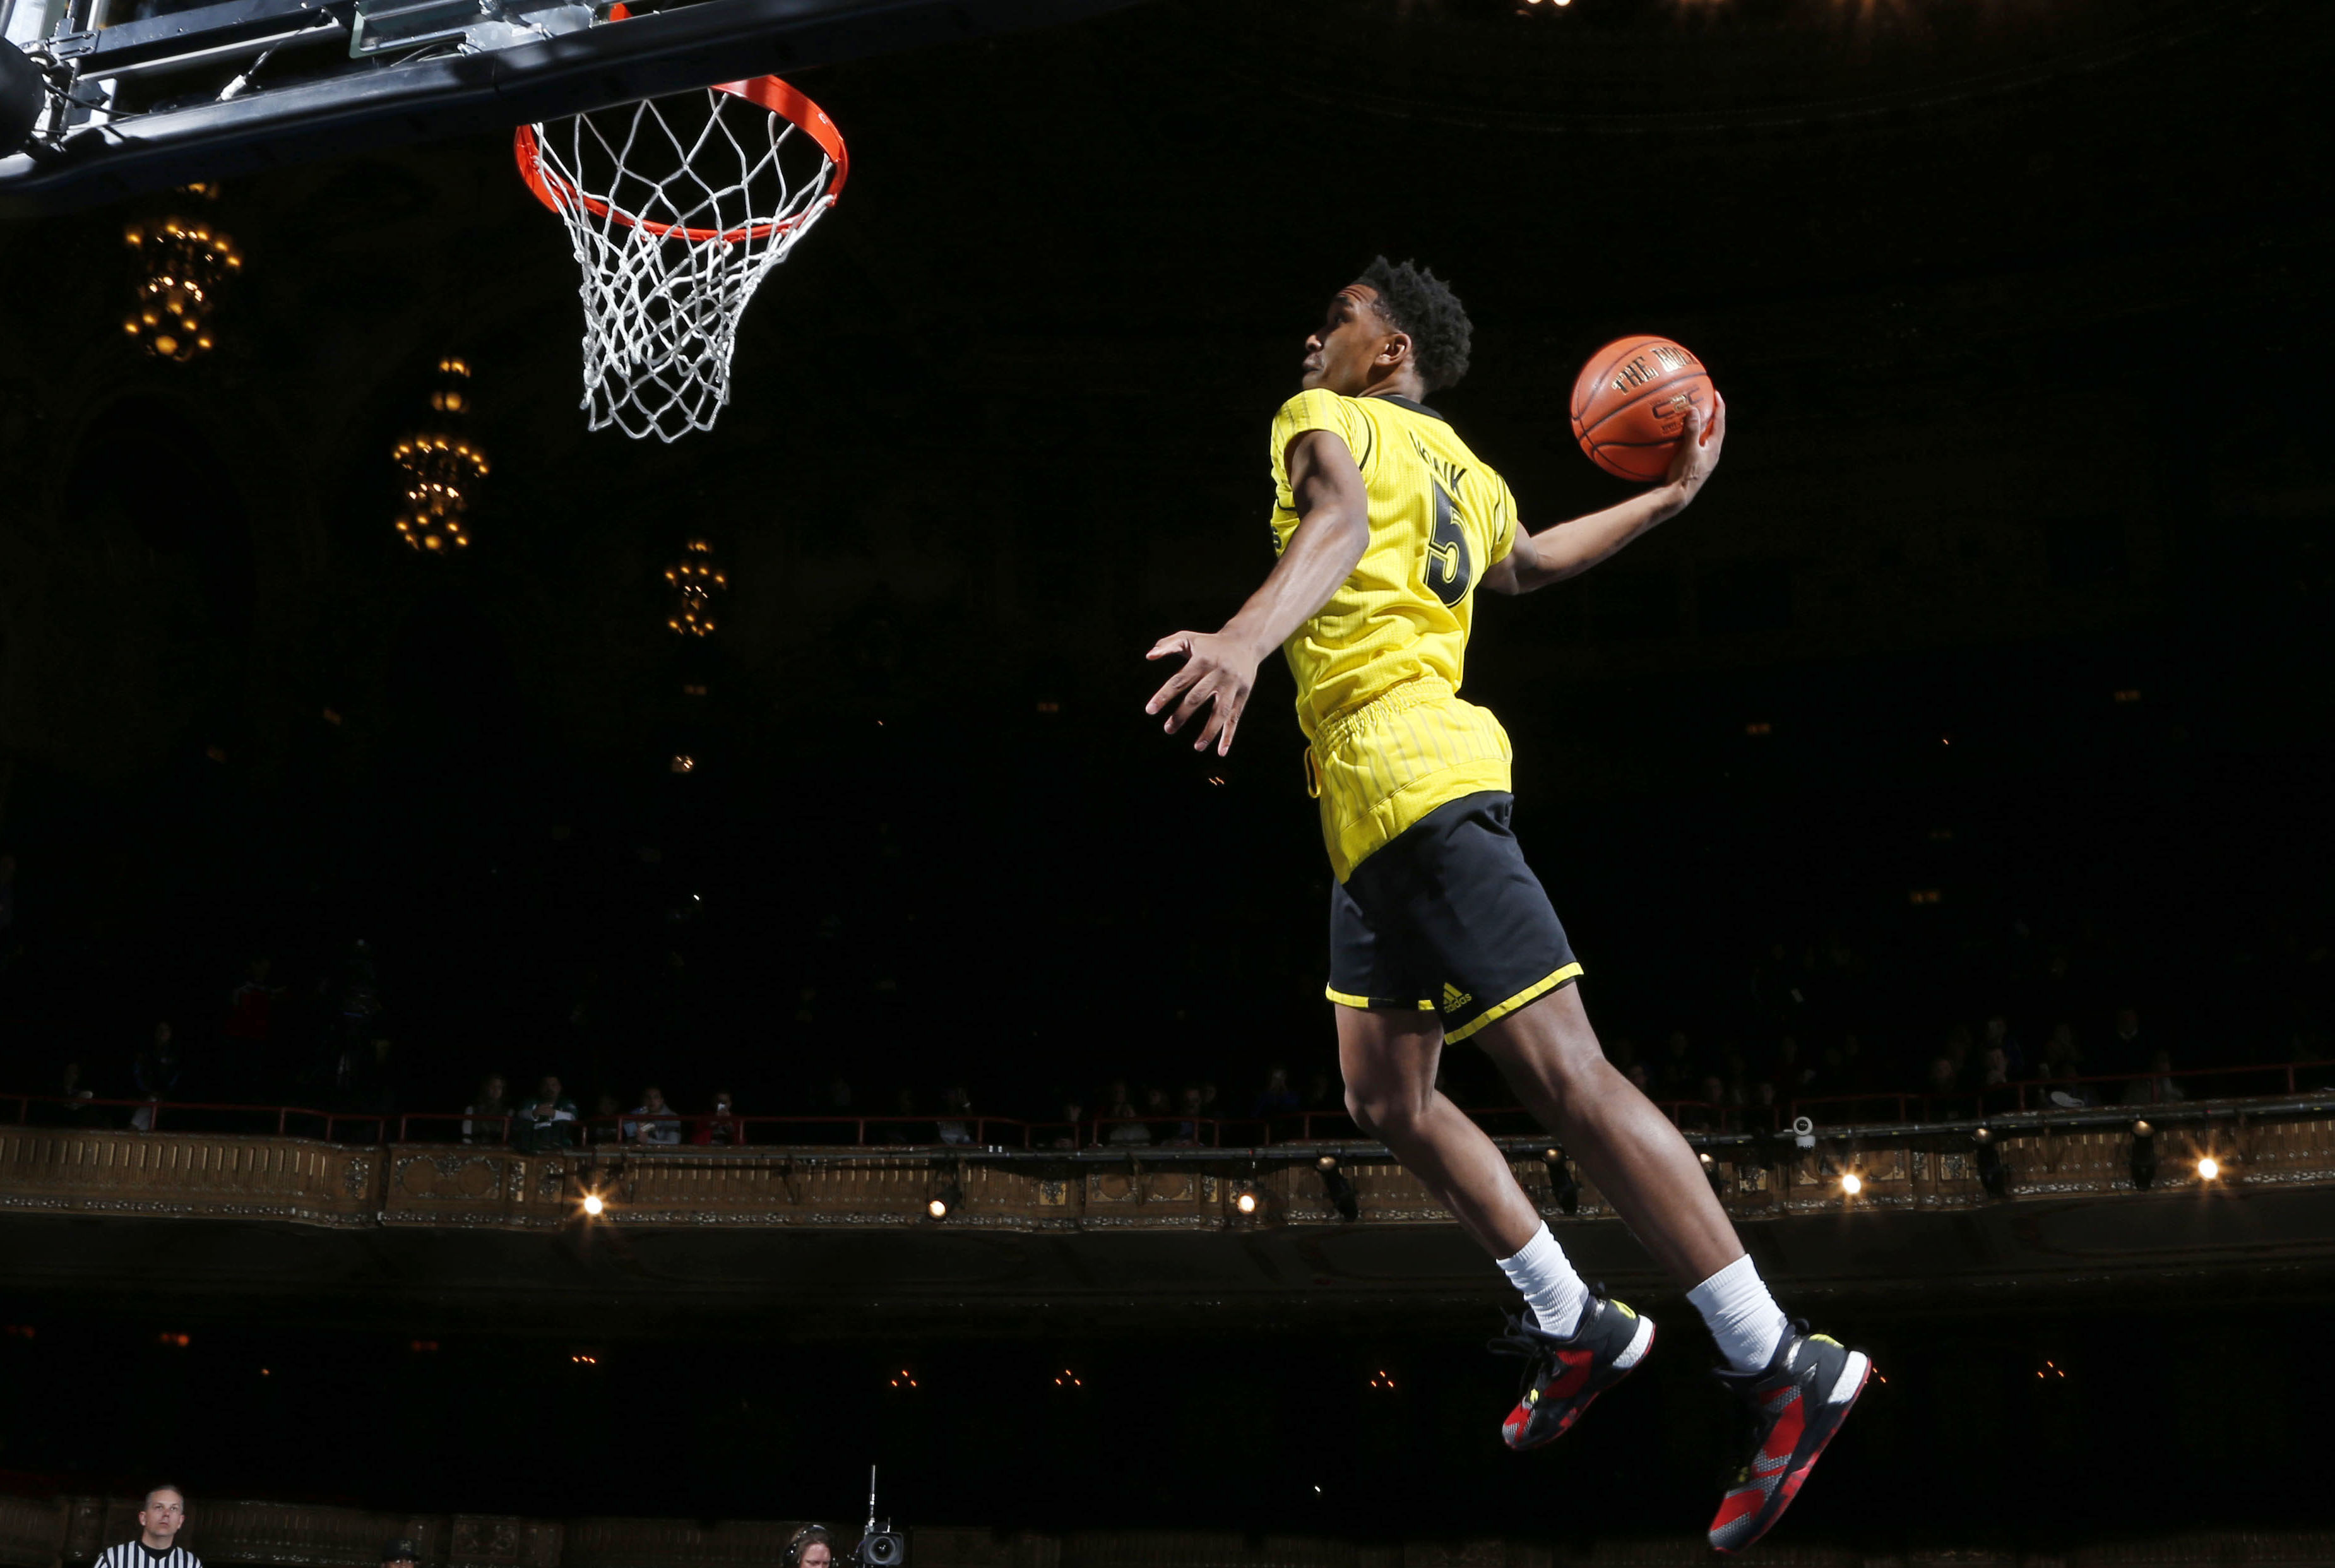 Malik Monk soars during the dunk contest (Photo: Brian Spurlock, USA TODAY Sports)